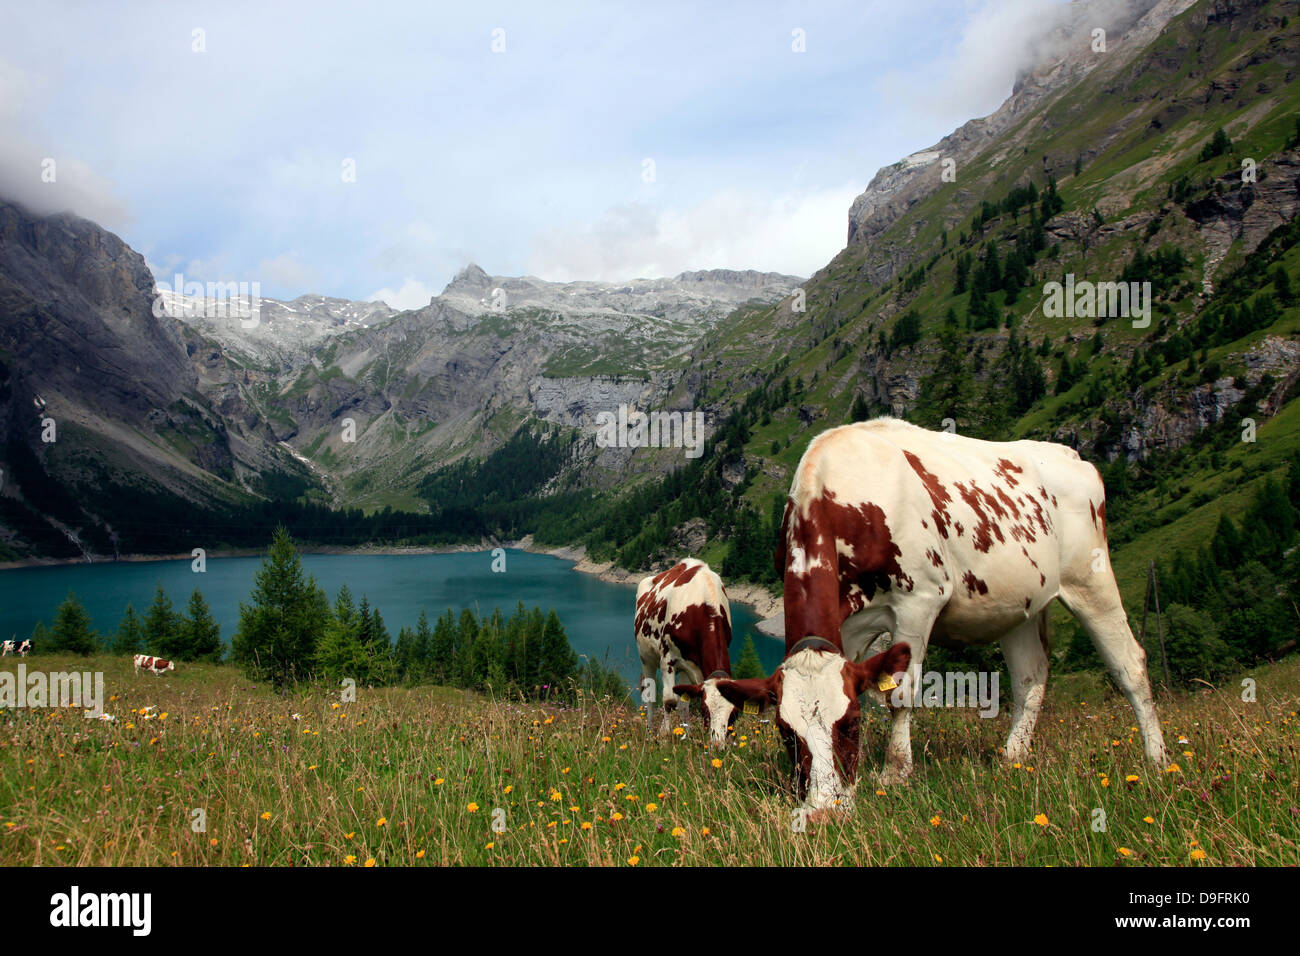 Cows grazing in the meadow above Rawyl reservoir, Valais region, Swiss Alps, western Switzerland Stock Photo